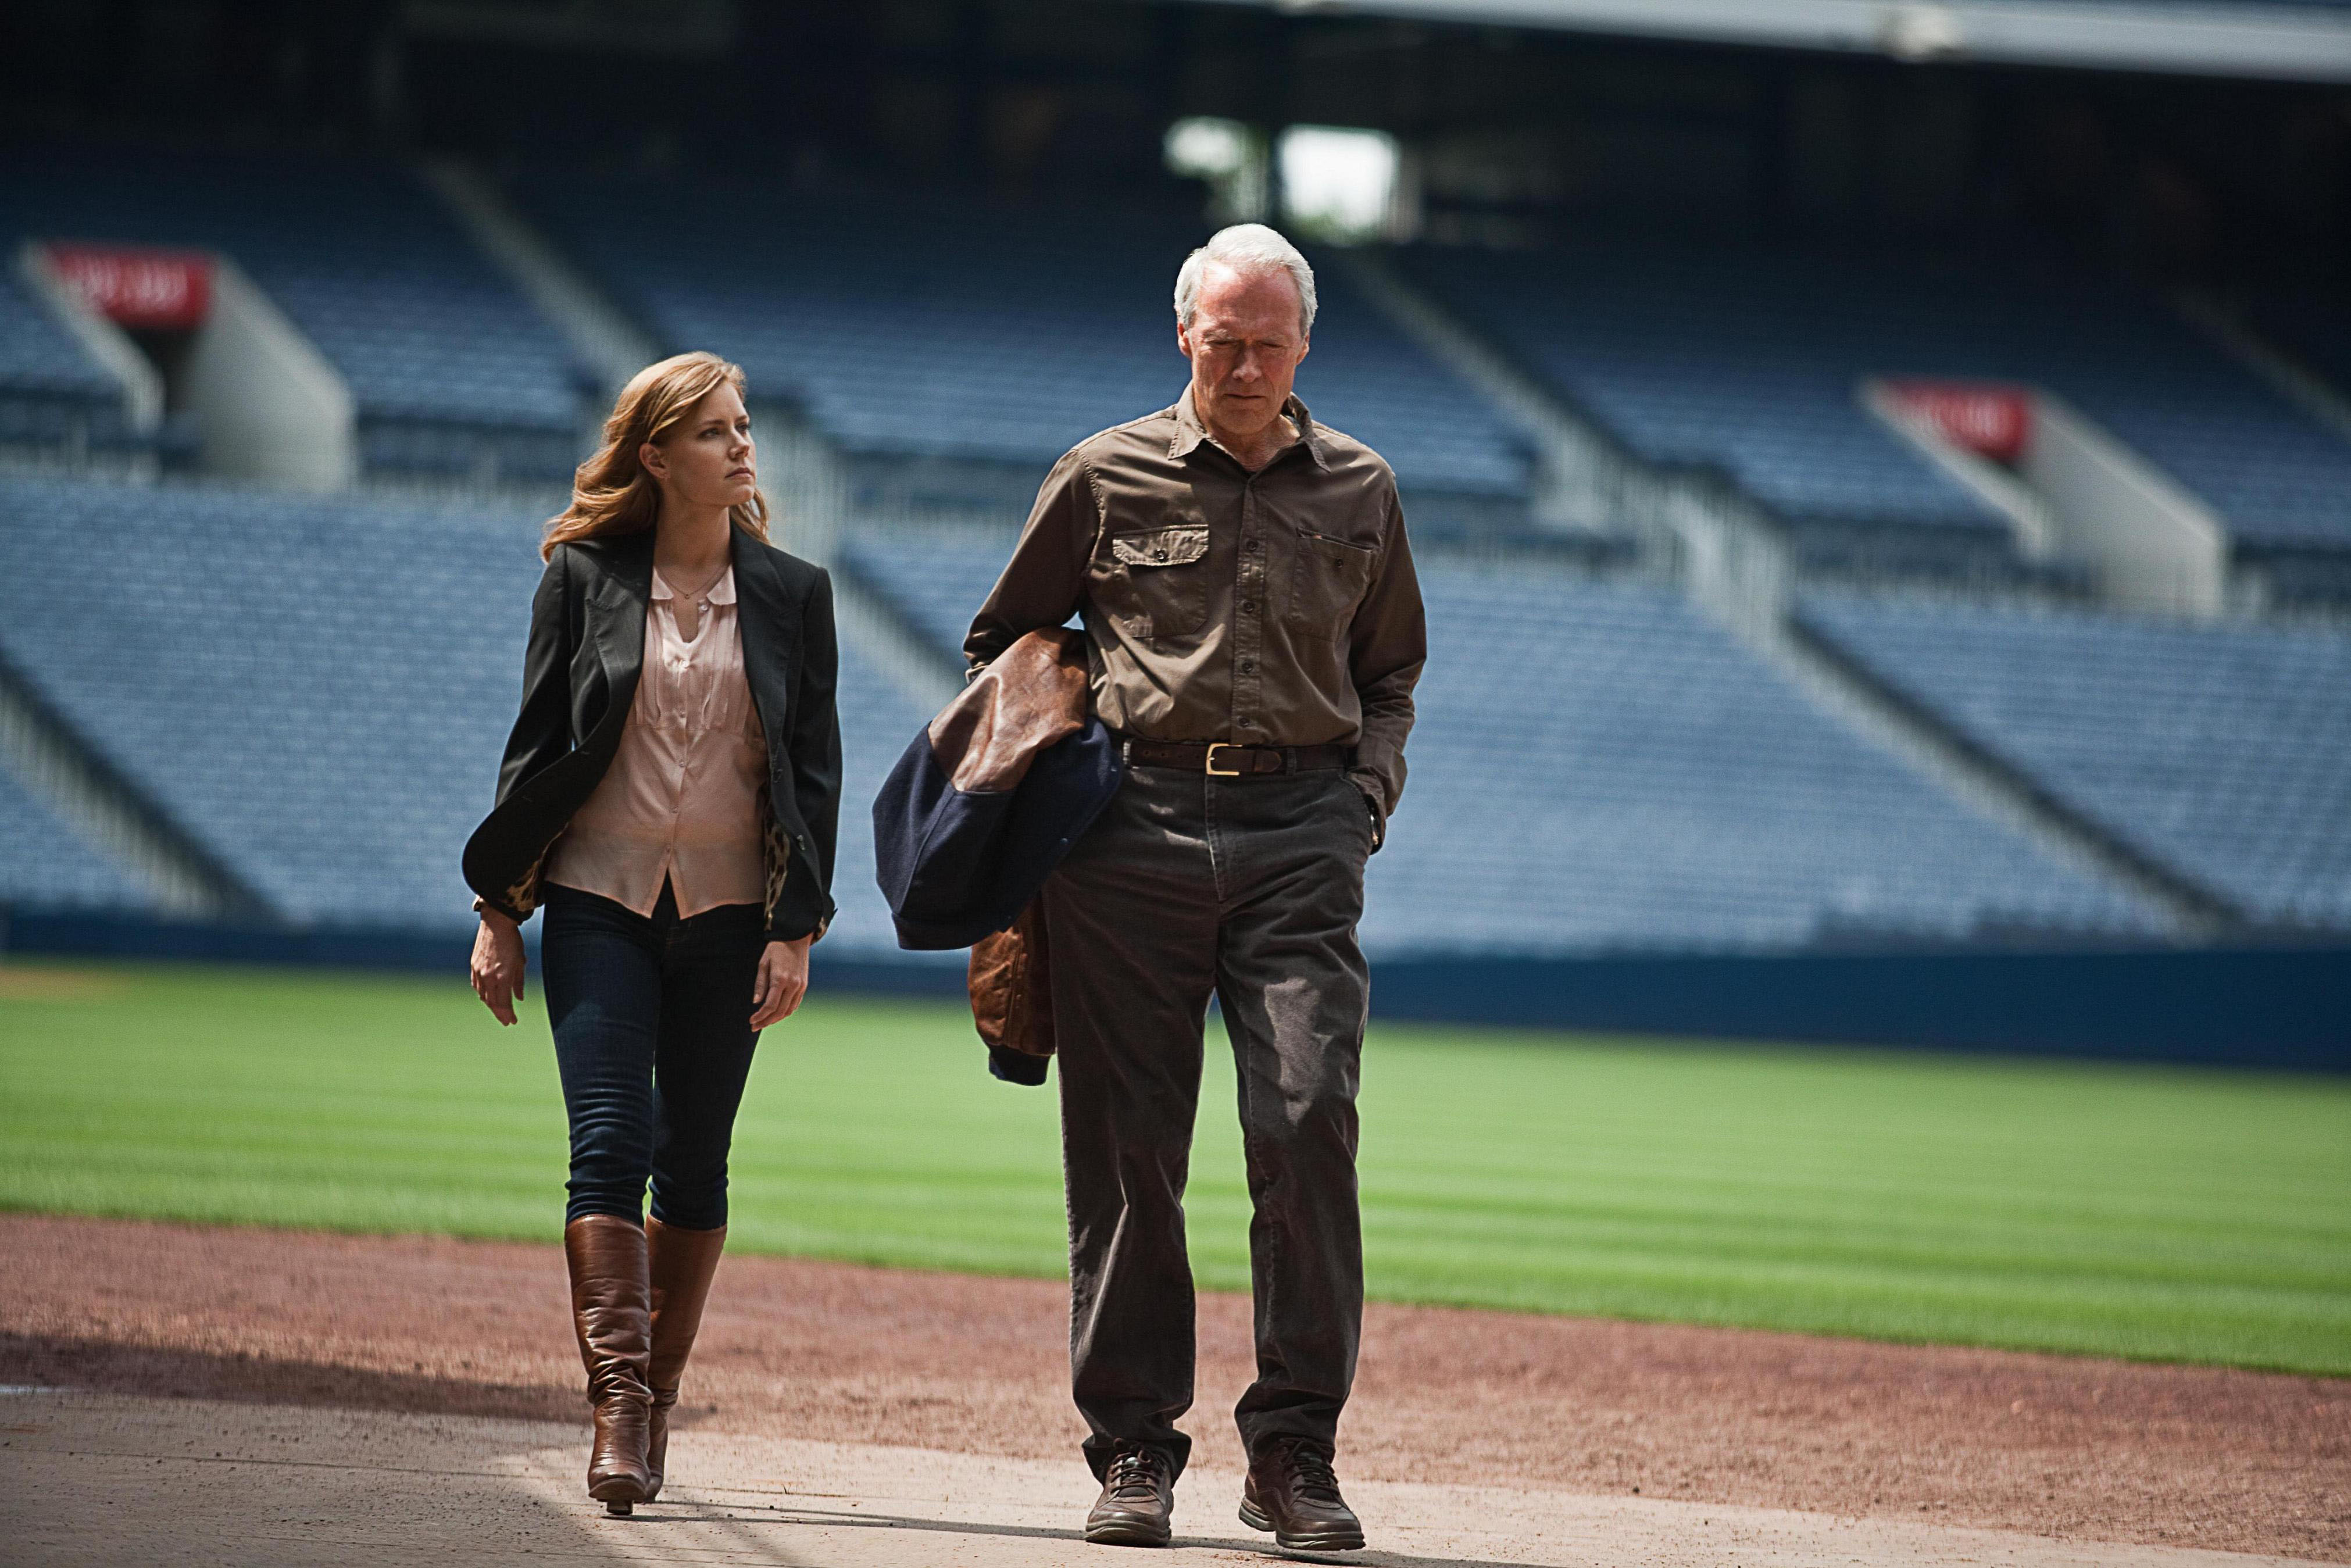 Clint Eastwood plays a soon-to-retire baseball scout opposite Amy Adams in father-daughter drama 'Trouble With the Curve' | © 2012 WARNER BROS. ENTERTAINMENT INC